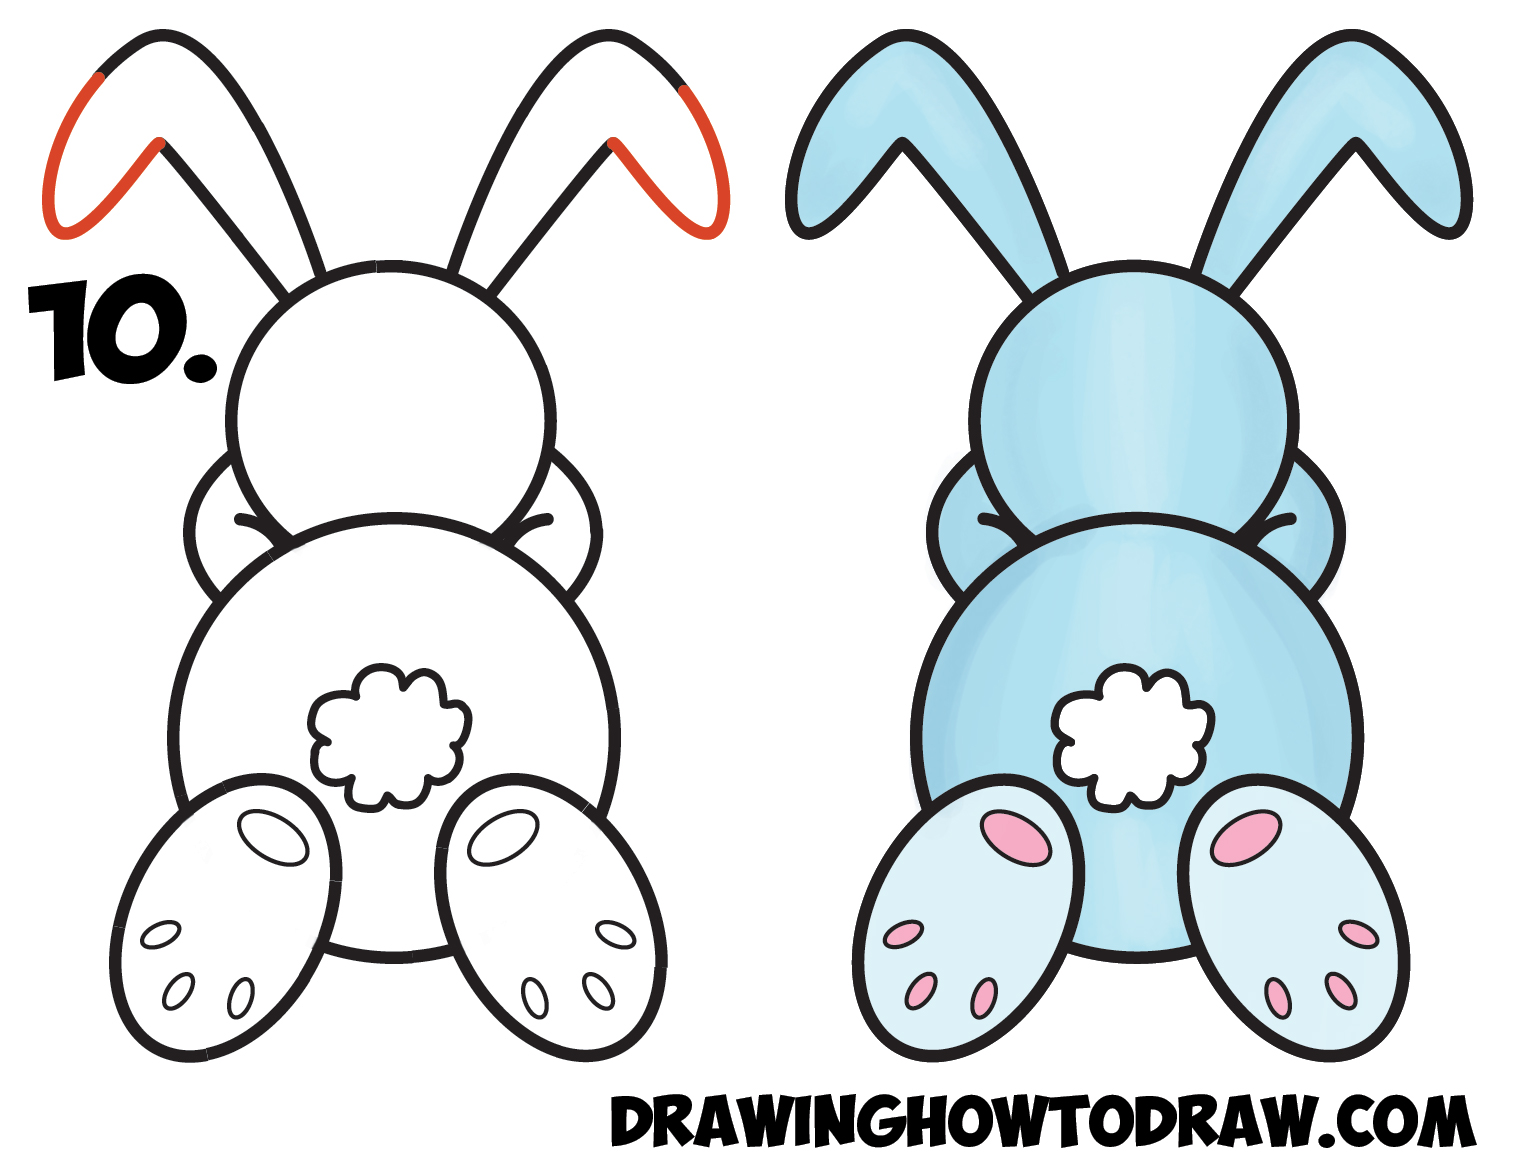 Learn how to draw a cute cartoon sleeping bunny rabbit from 8 shape simple steps